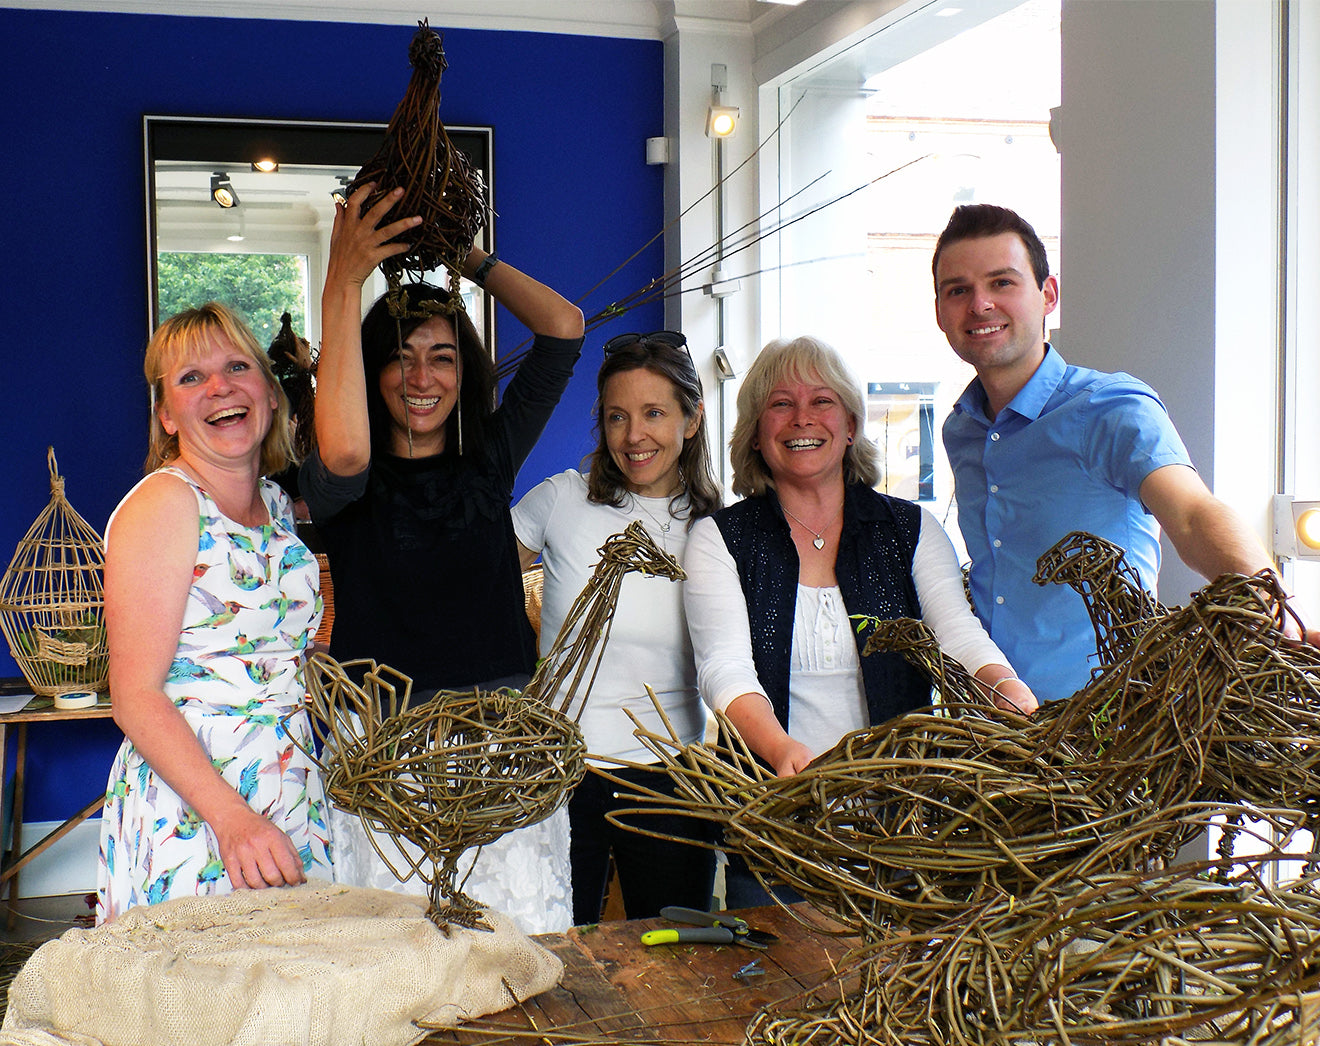 Martyn White group photo with willow weaving workshop participants at LINLEY London